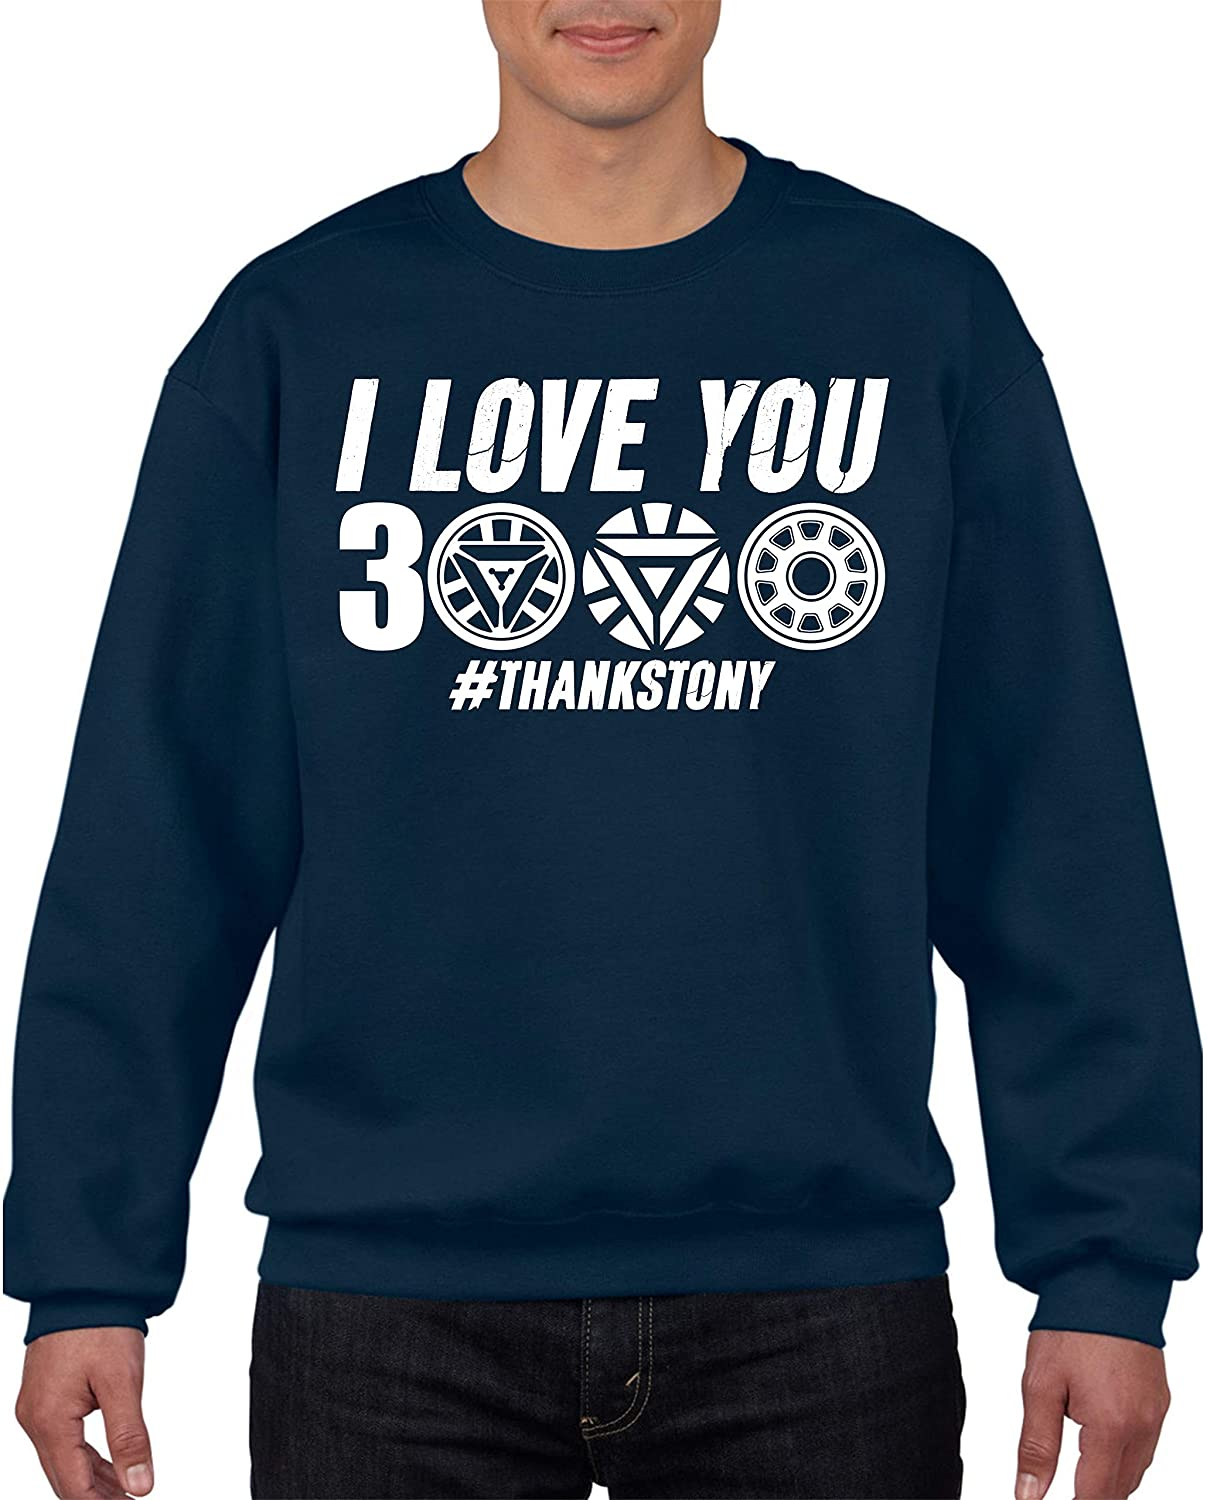 3 Thousand Thanks Tony Marvel Comics Superheroes Fans Gift Kids /& Adults Size Jumper Top Avengers Endgame Jumper Iron Man I Love You 3000